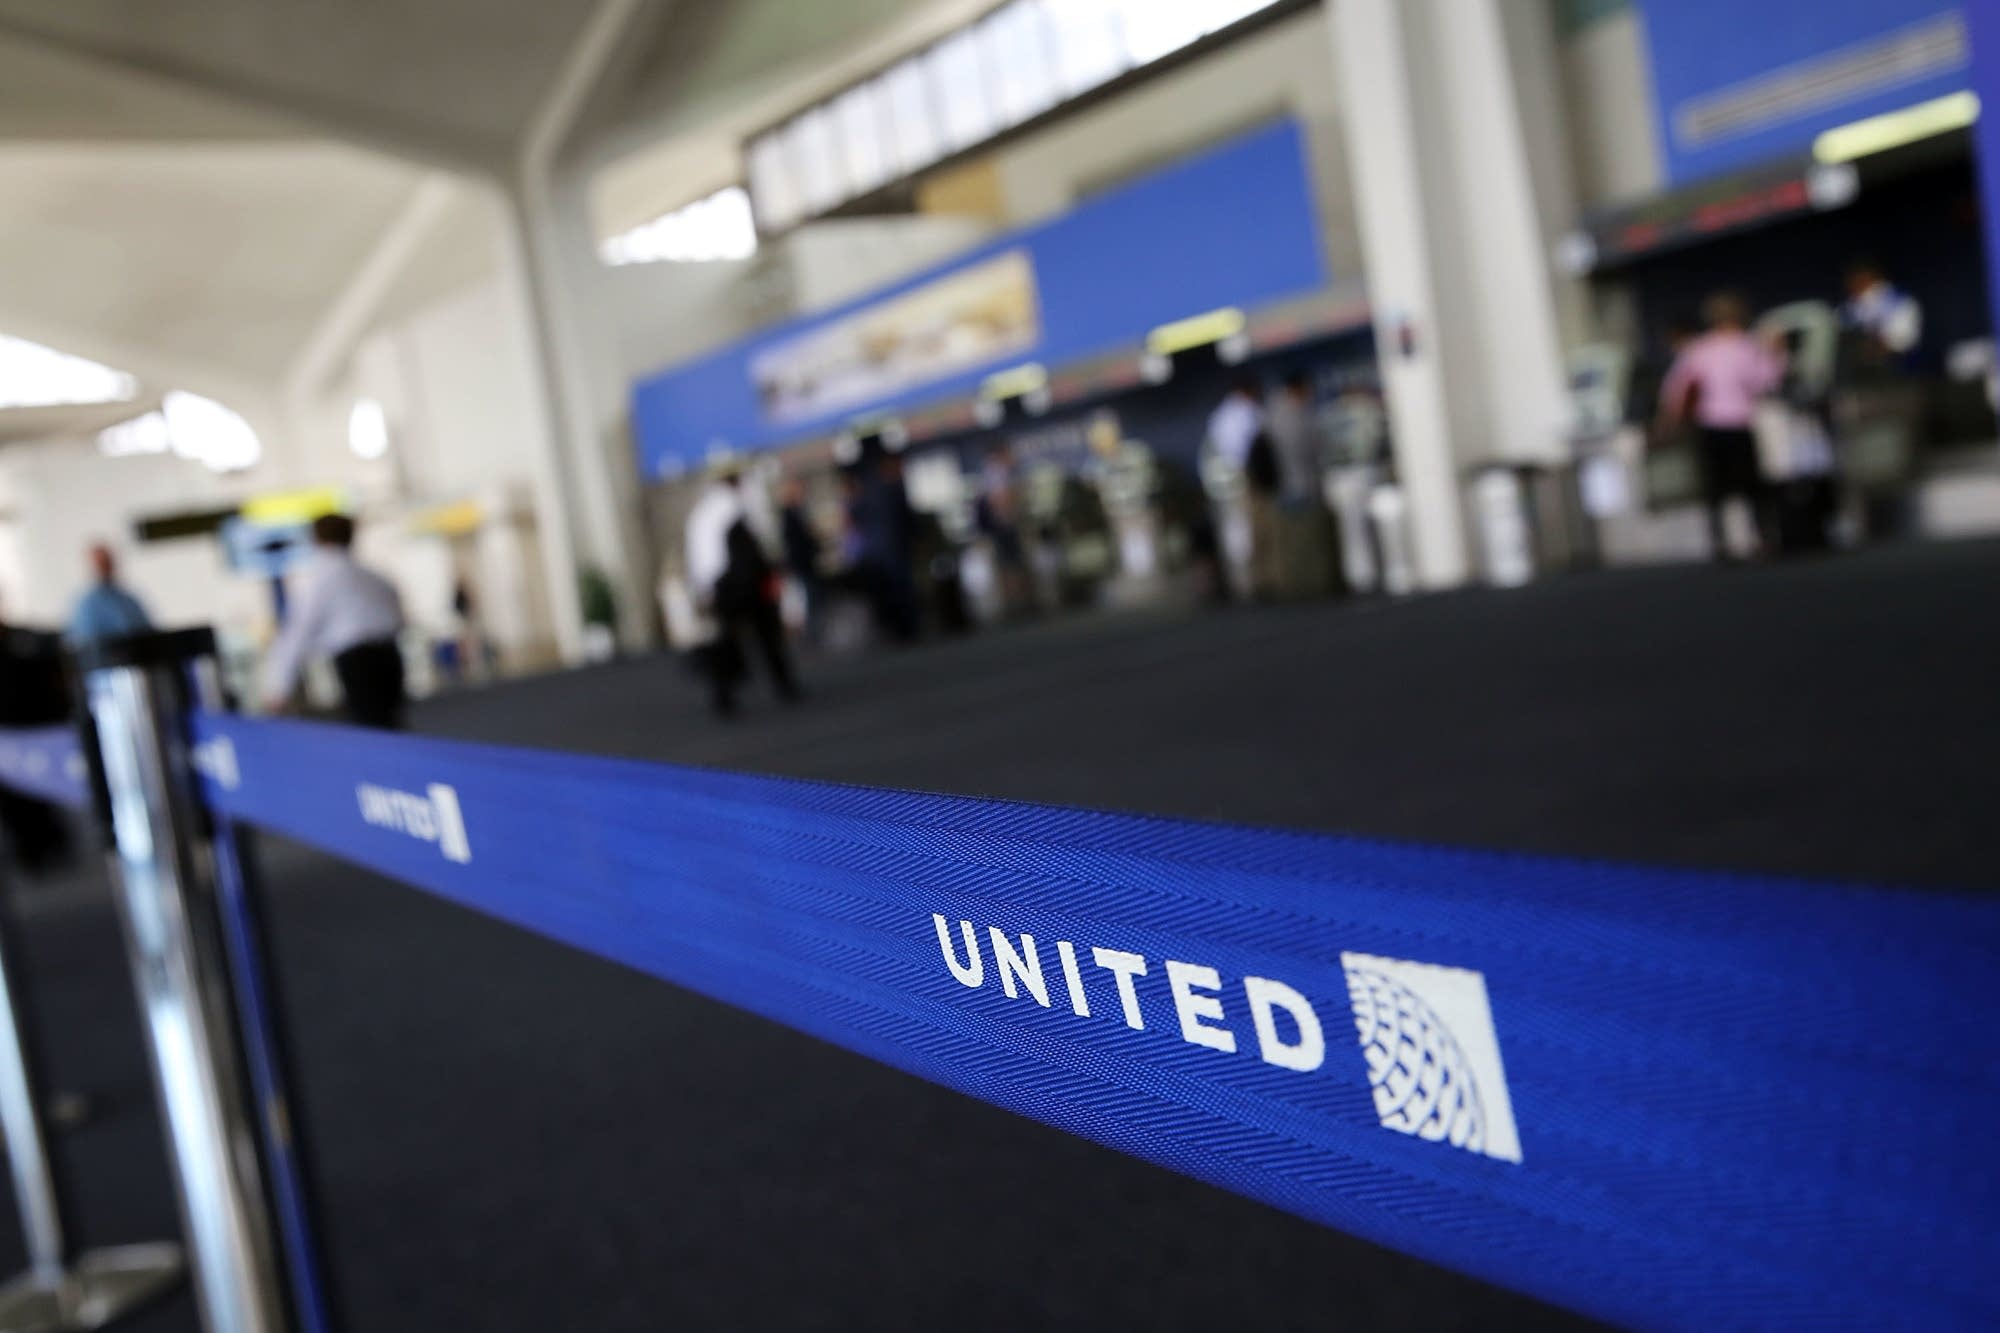 United passenger claims scorpion bit him